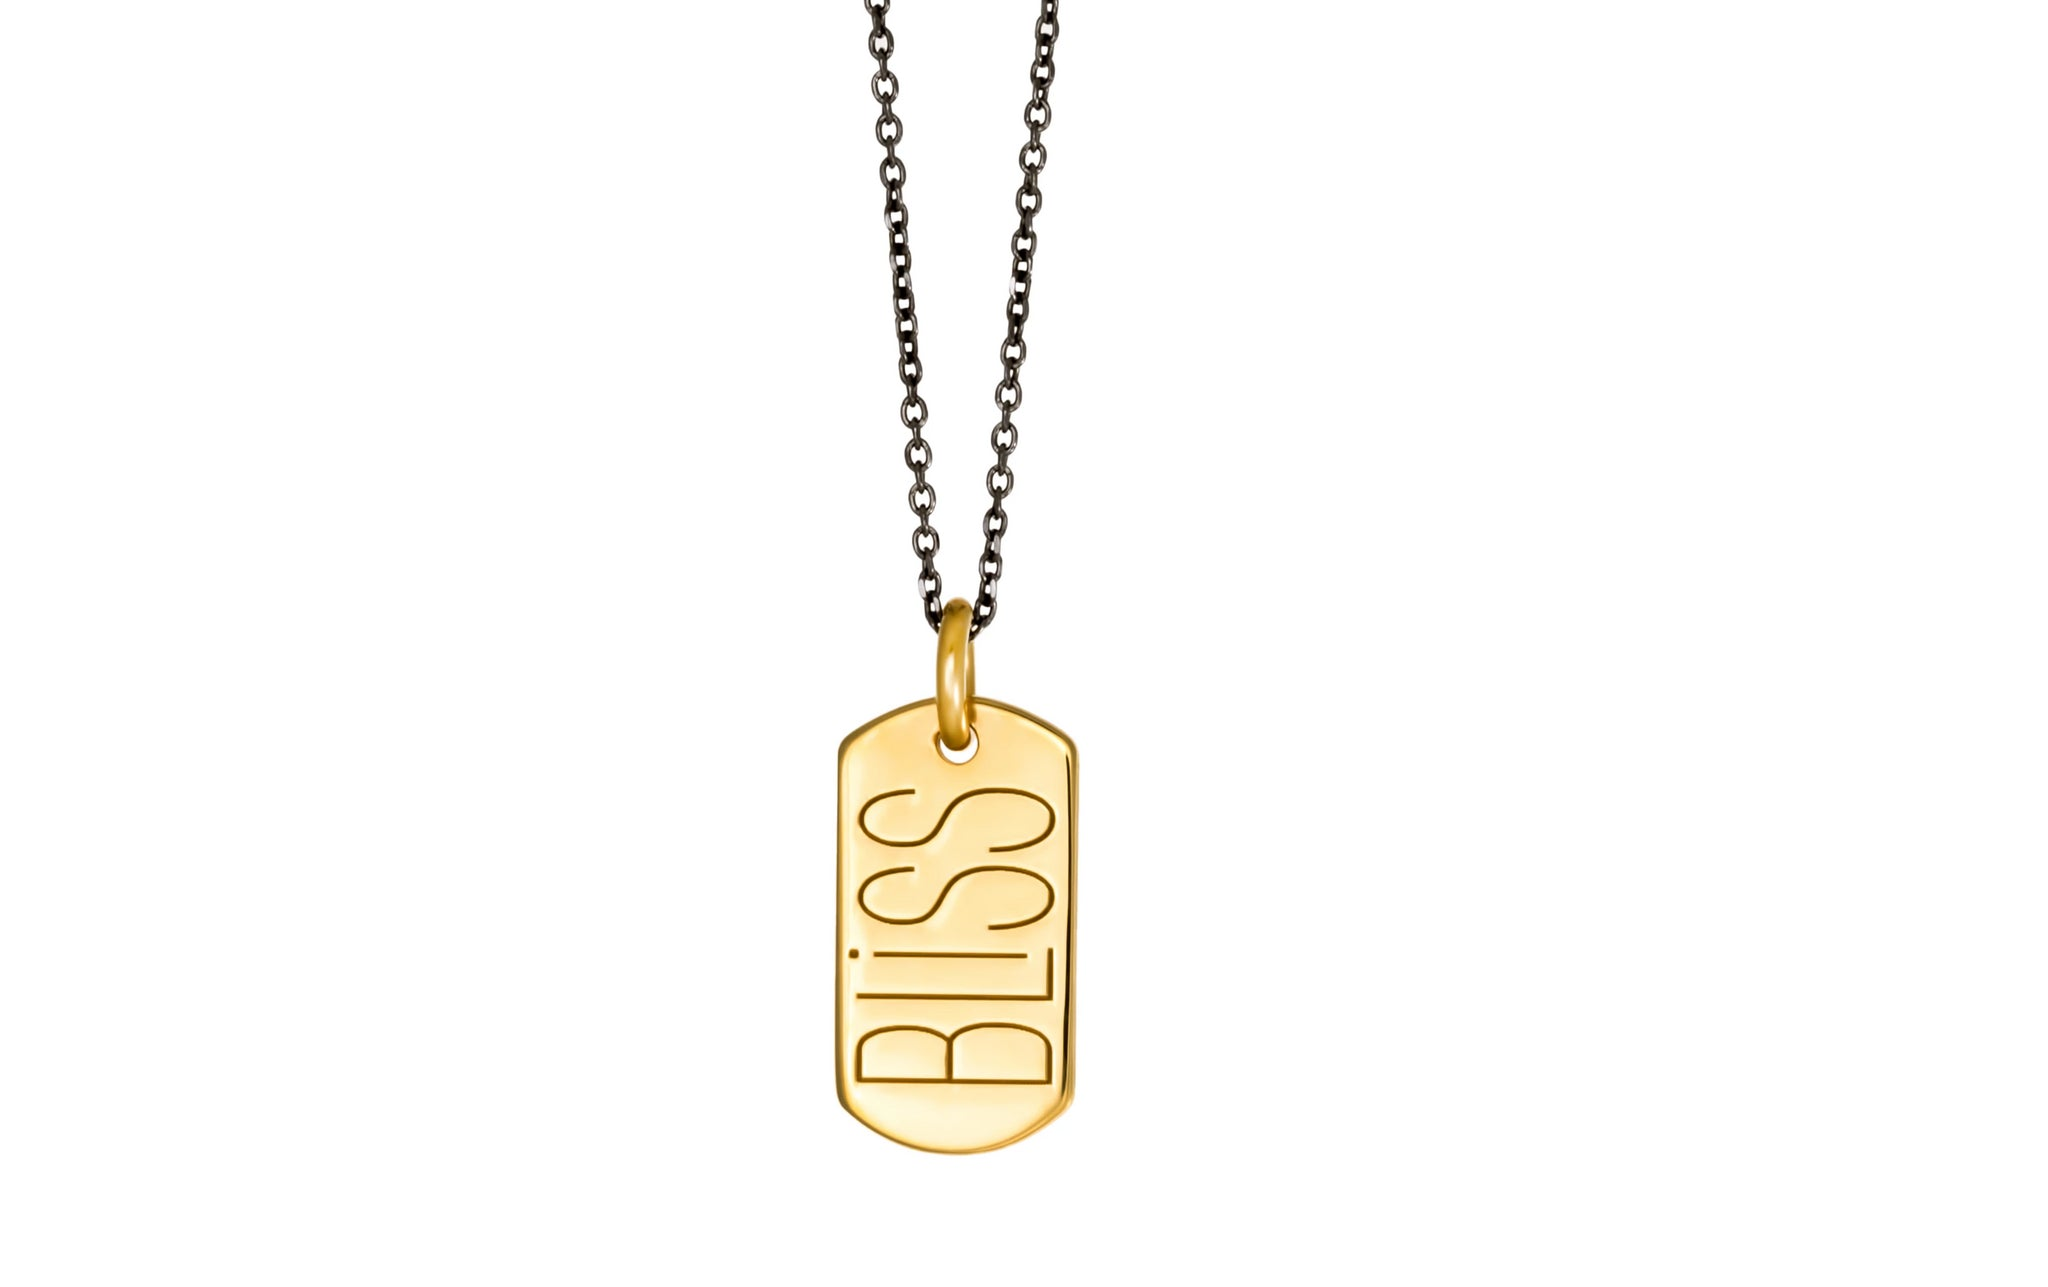 BLISS mini tag goldplated silver pendant